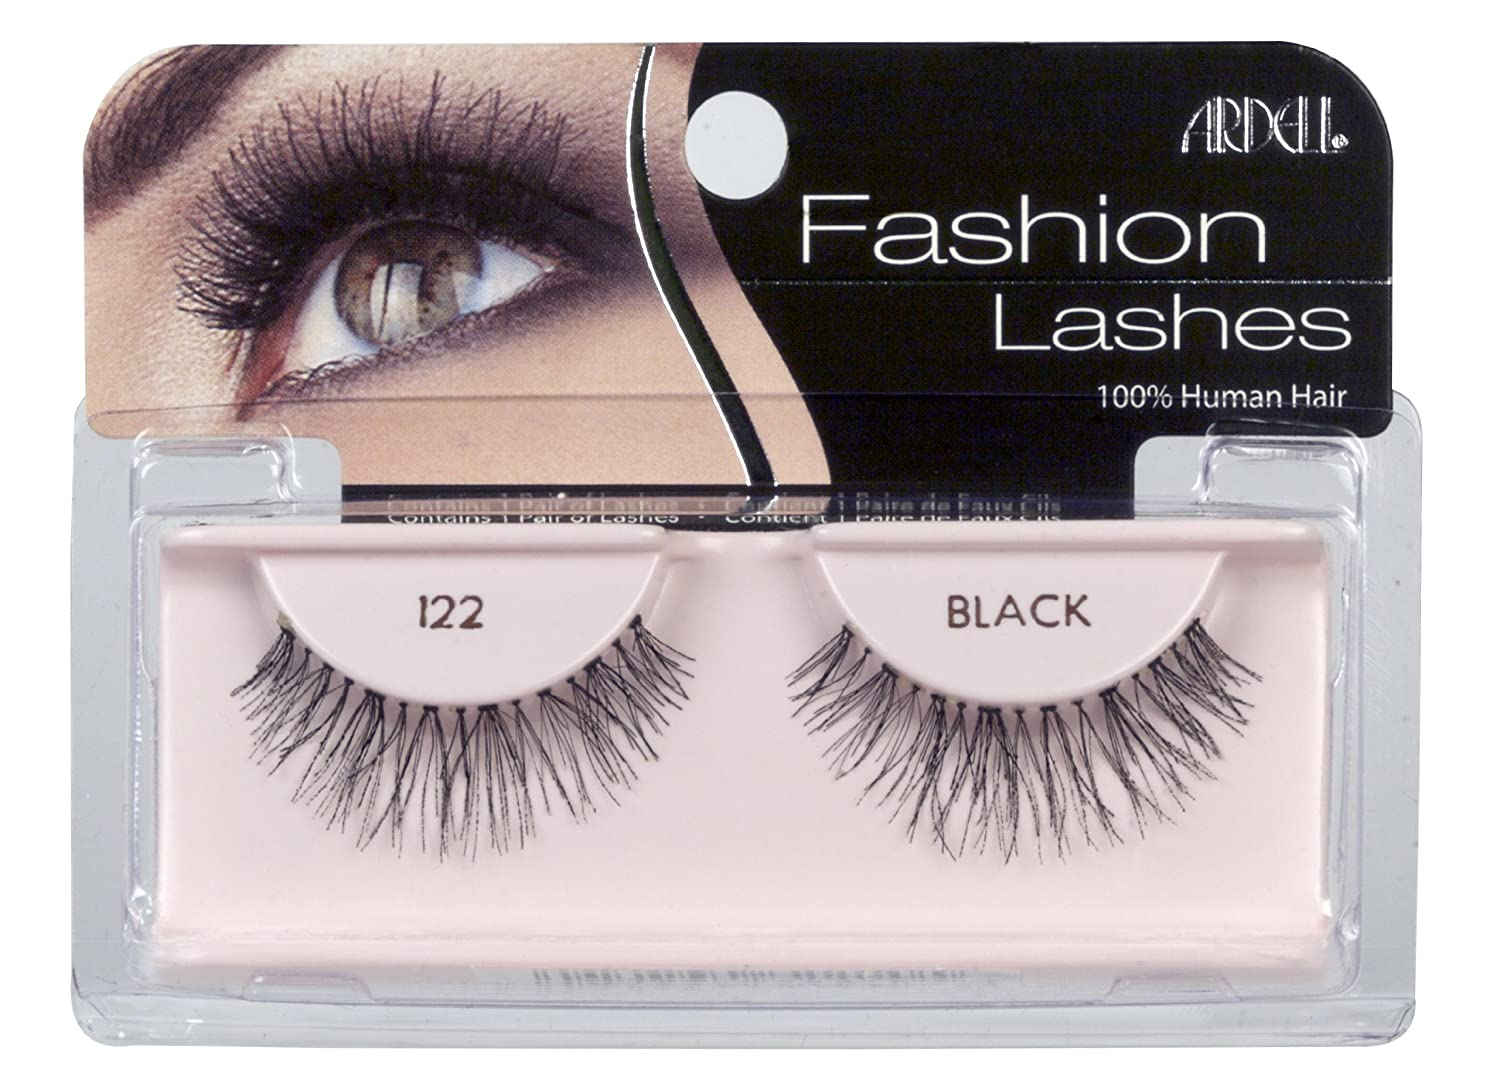 4b76a6087c1 Amazon.com : Ardell Fashion Lashes Pair - 122 (Pack of 4) : Fake ...